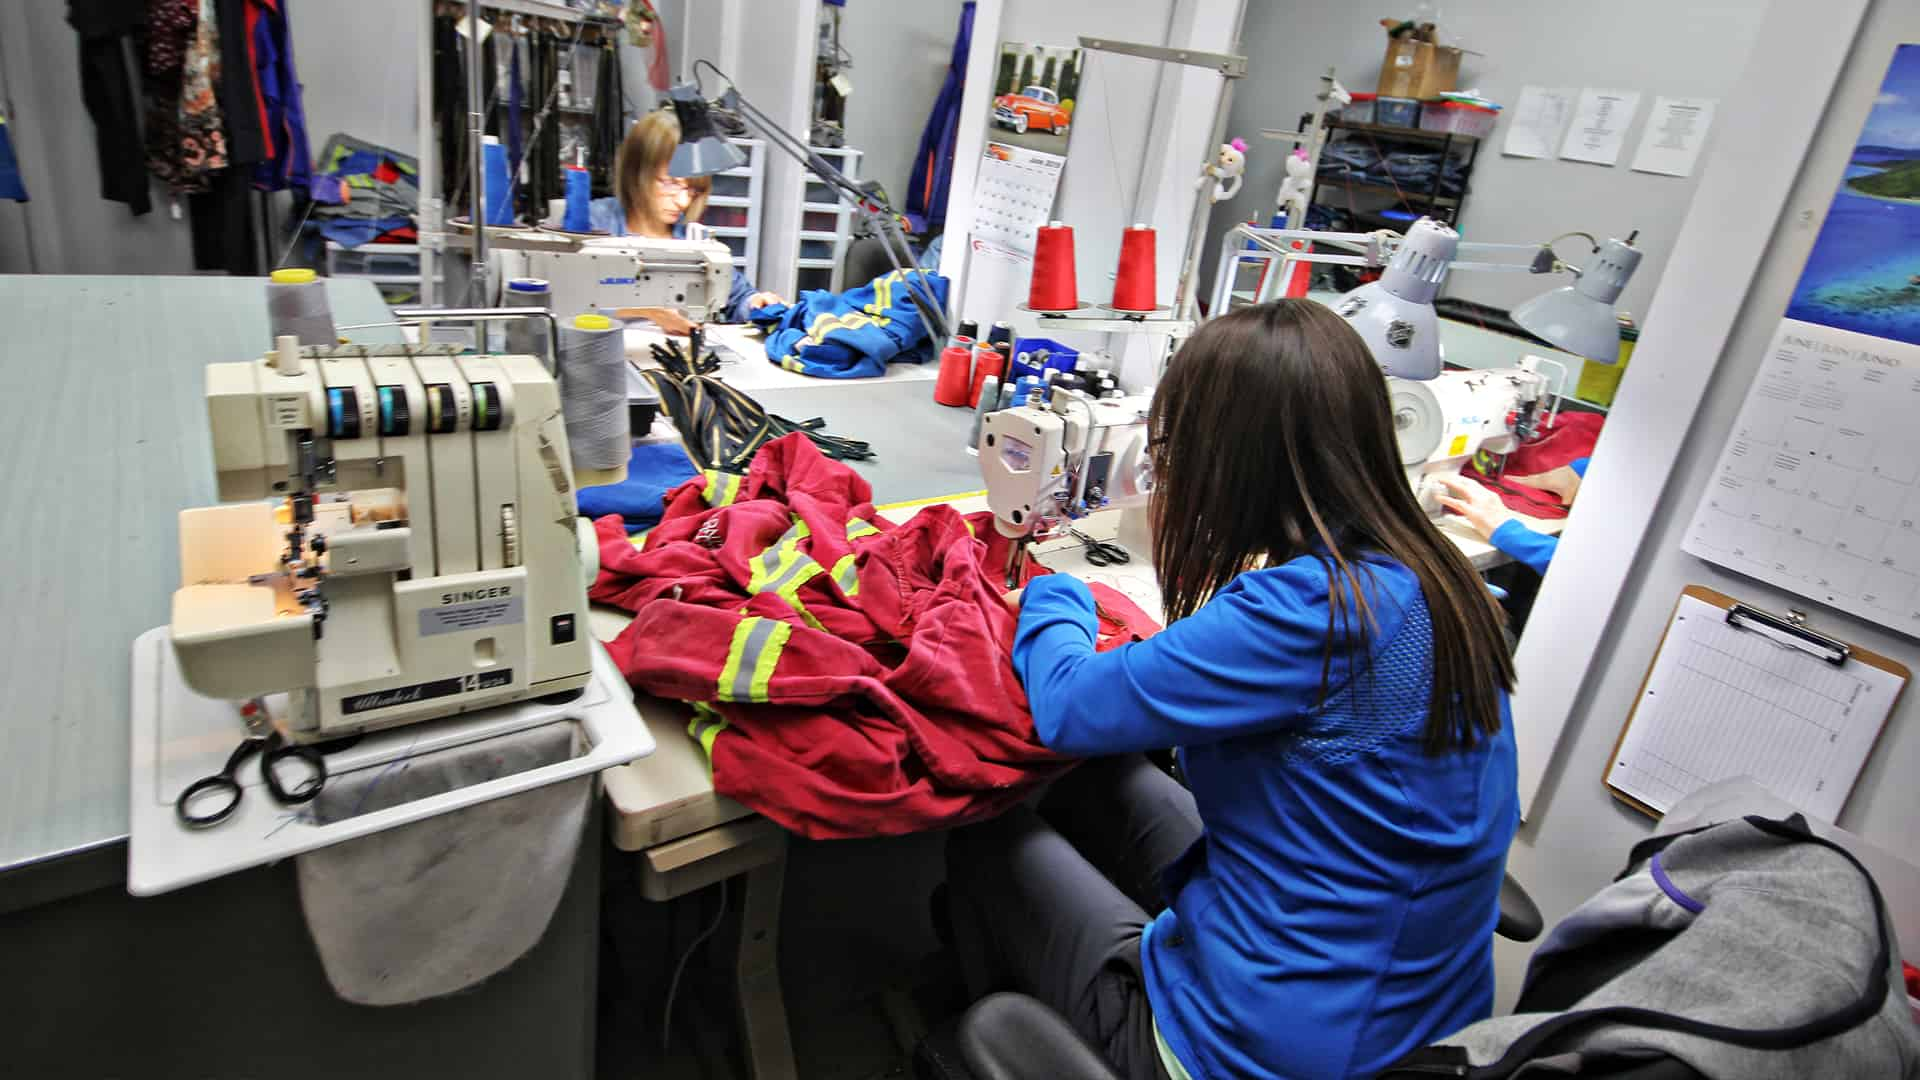 Richmond Dry Cleaners offers in-housevcoverall repair